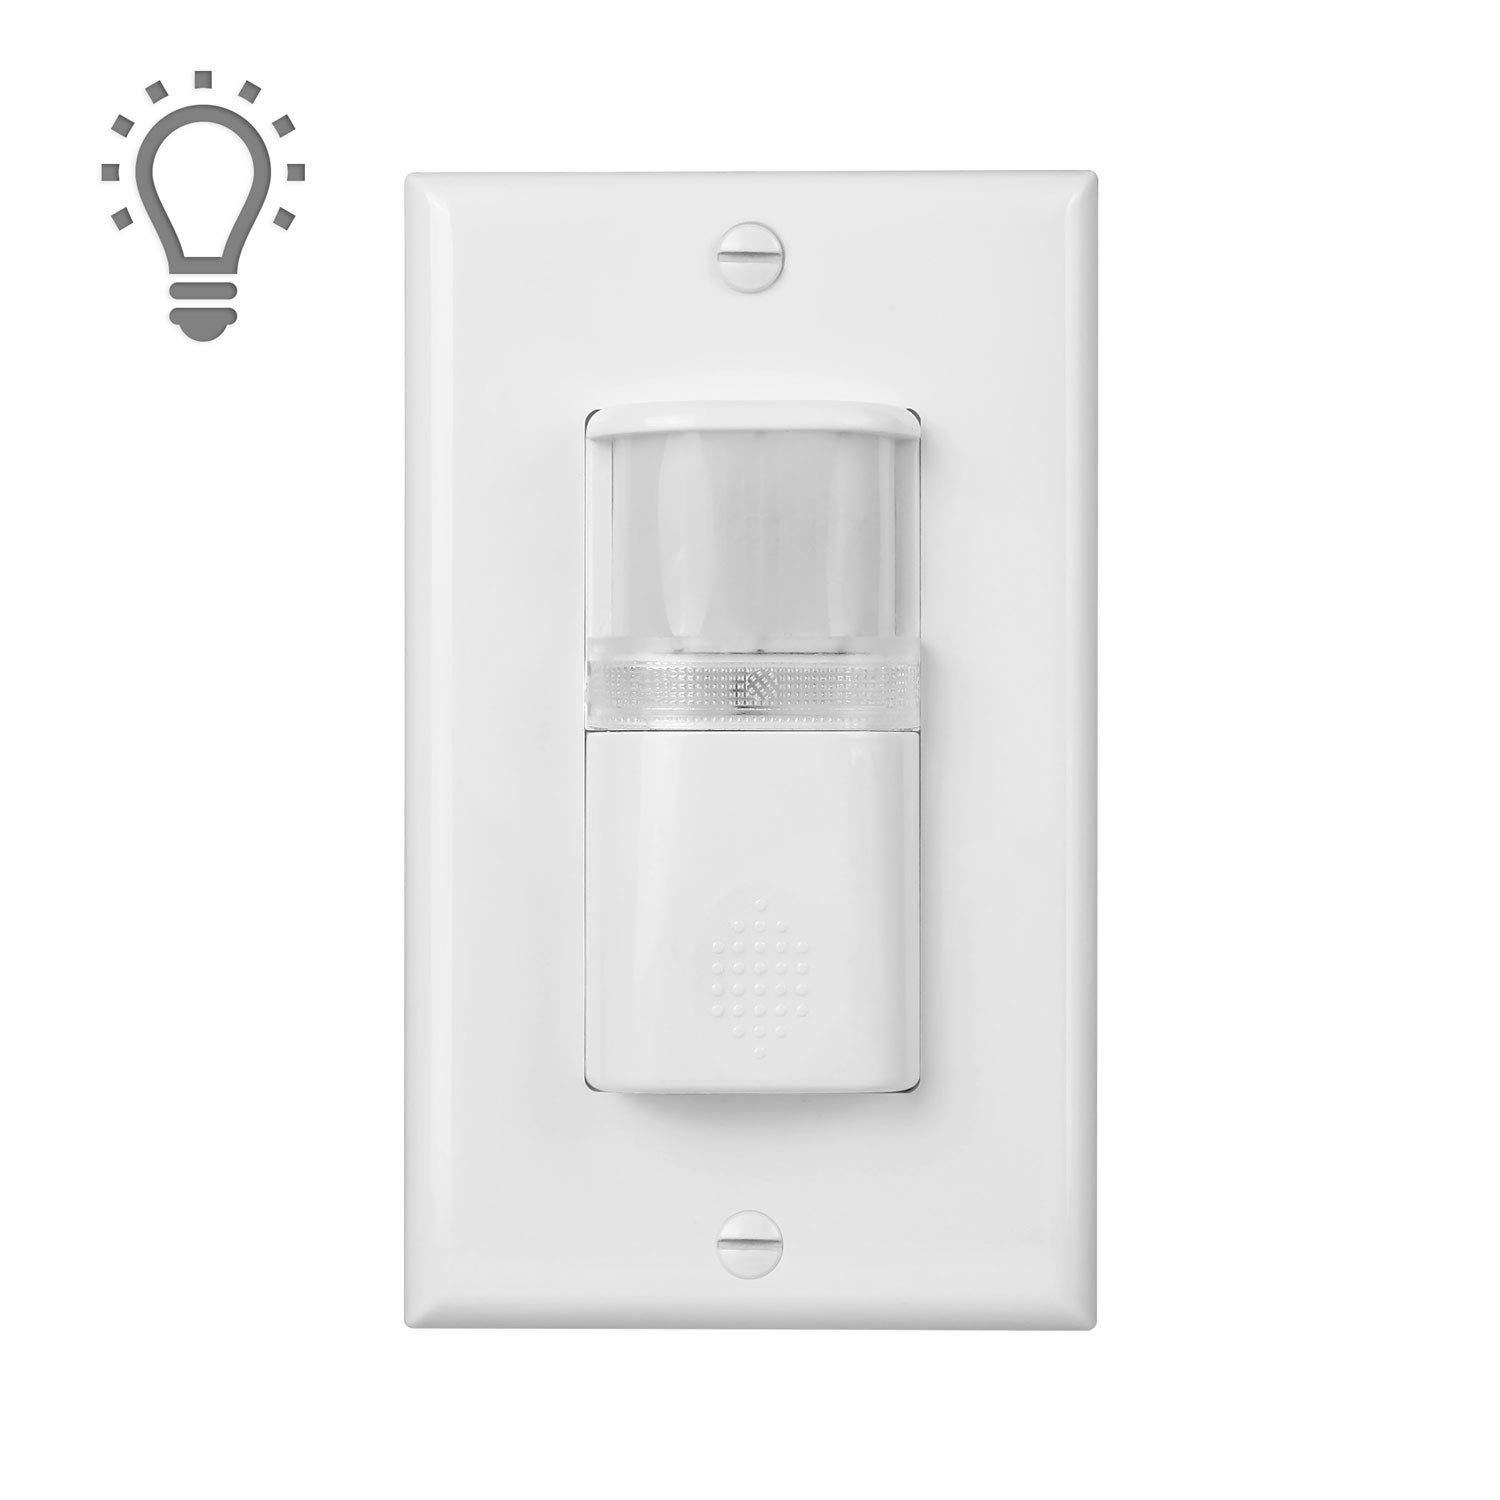 (Pack of 1) White Motion Sensor Light Switch with Built in Night Light – NEUTRAL Wire Required – Single Pole – For Indoor Use – Vacancy & Occupancy Modes – Title 24, UL Certified – Adjustable Timer Dependable Direct